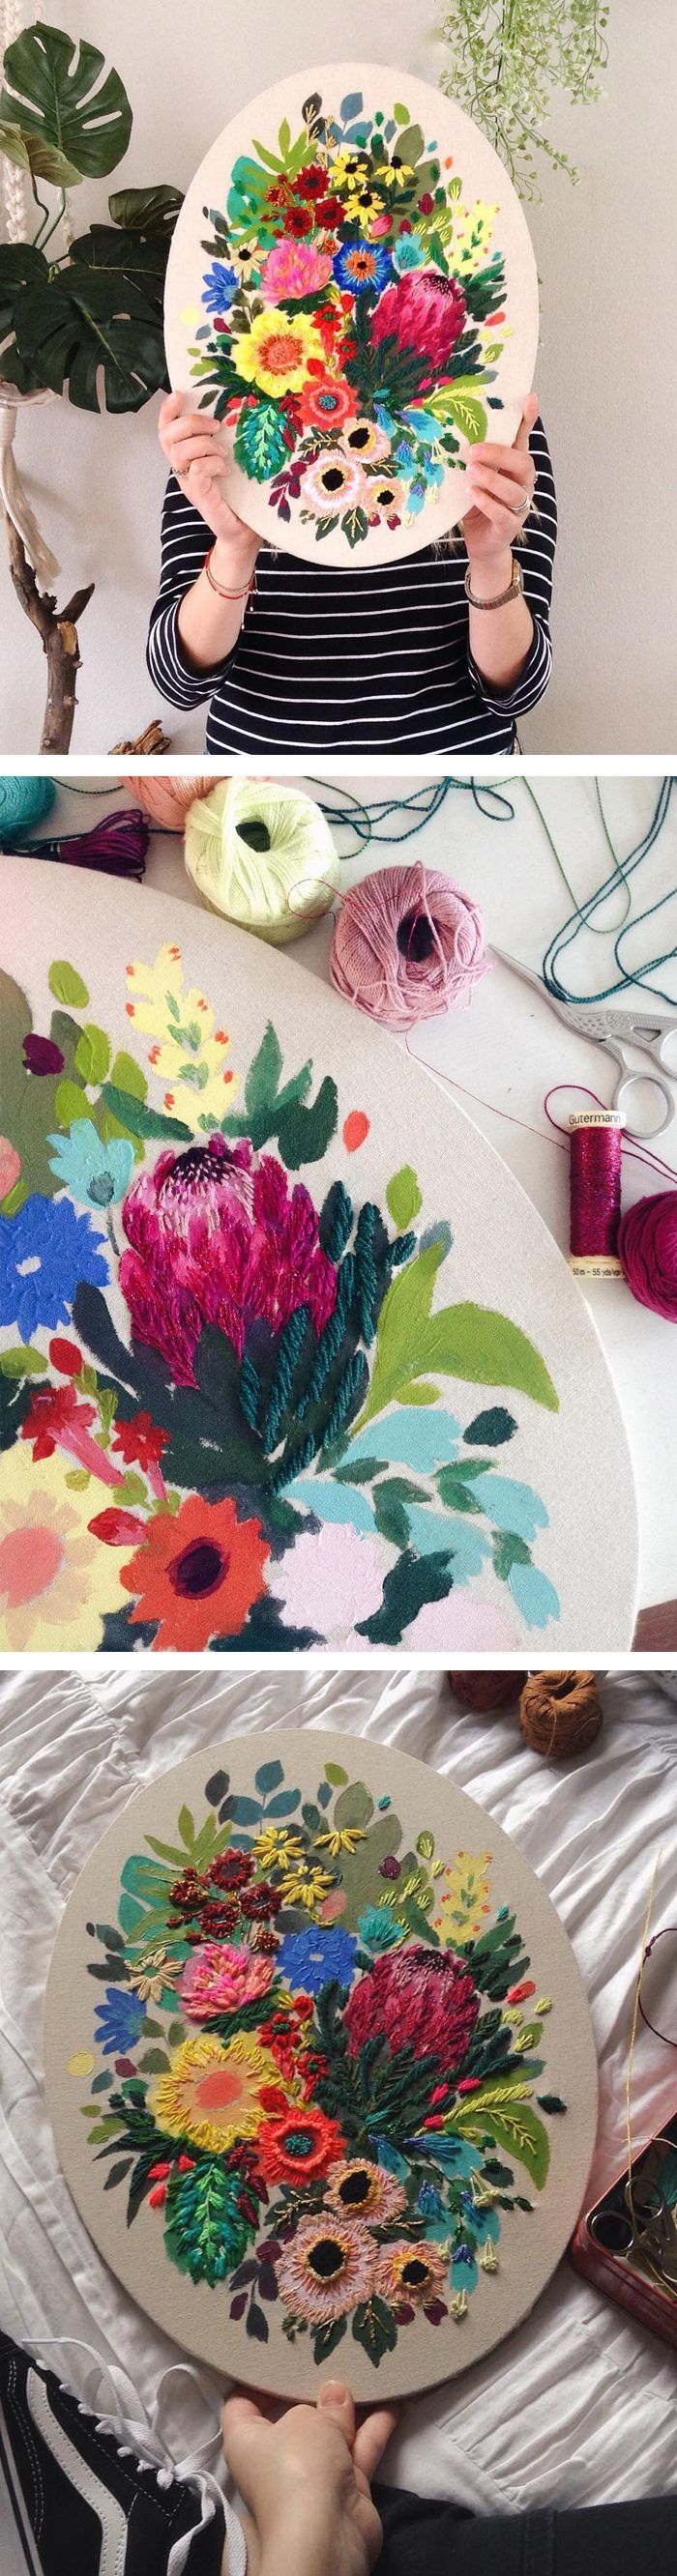 Lush floral art by Jo Jiménez // floral embroidery // mixed media art